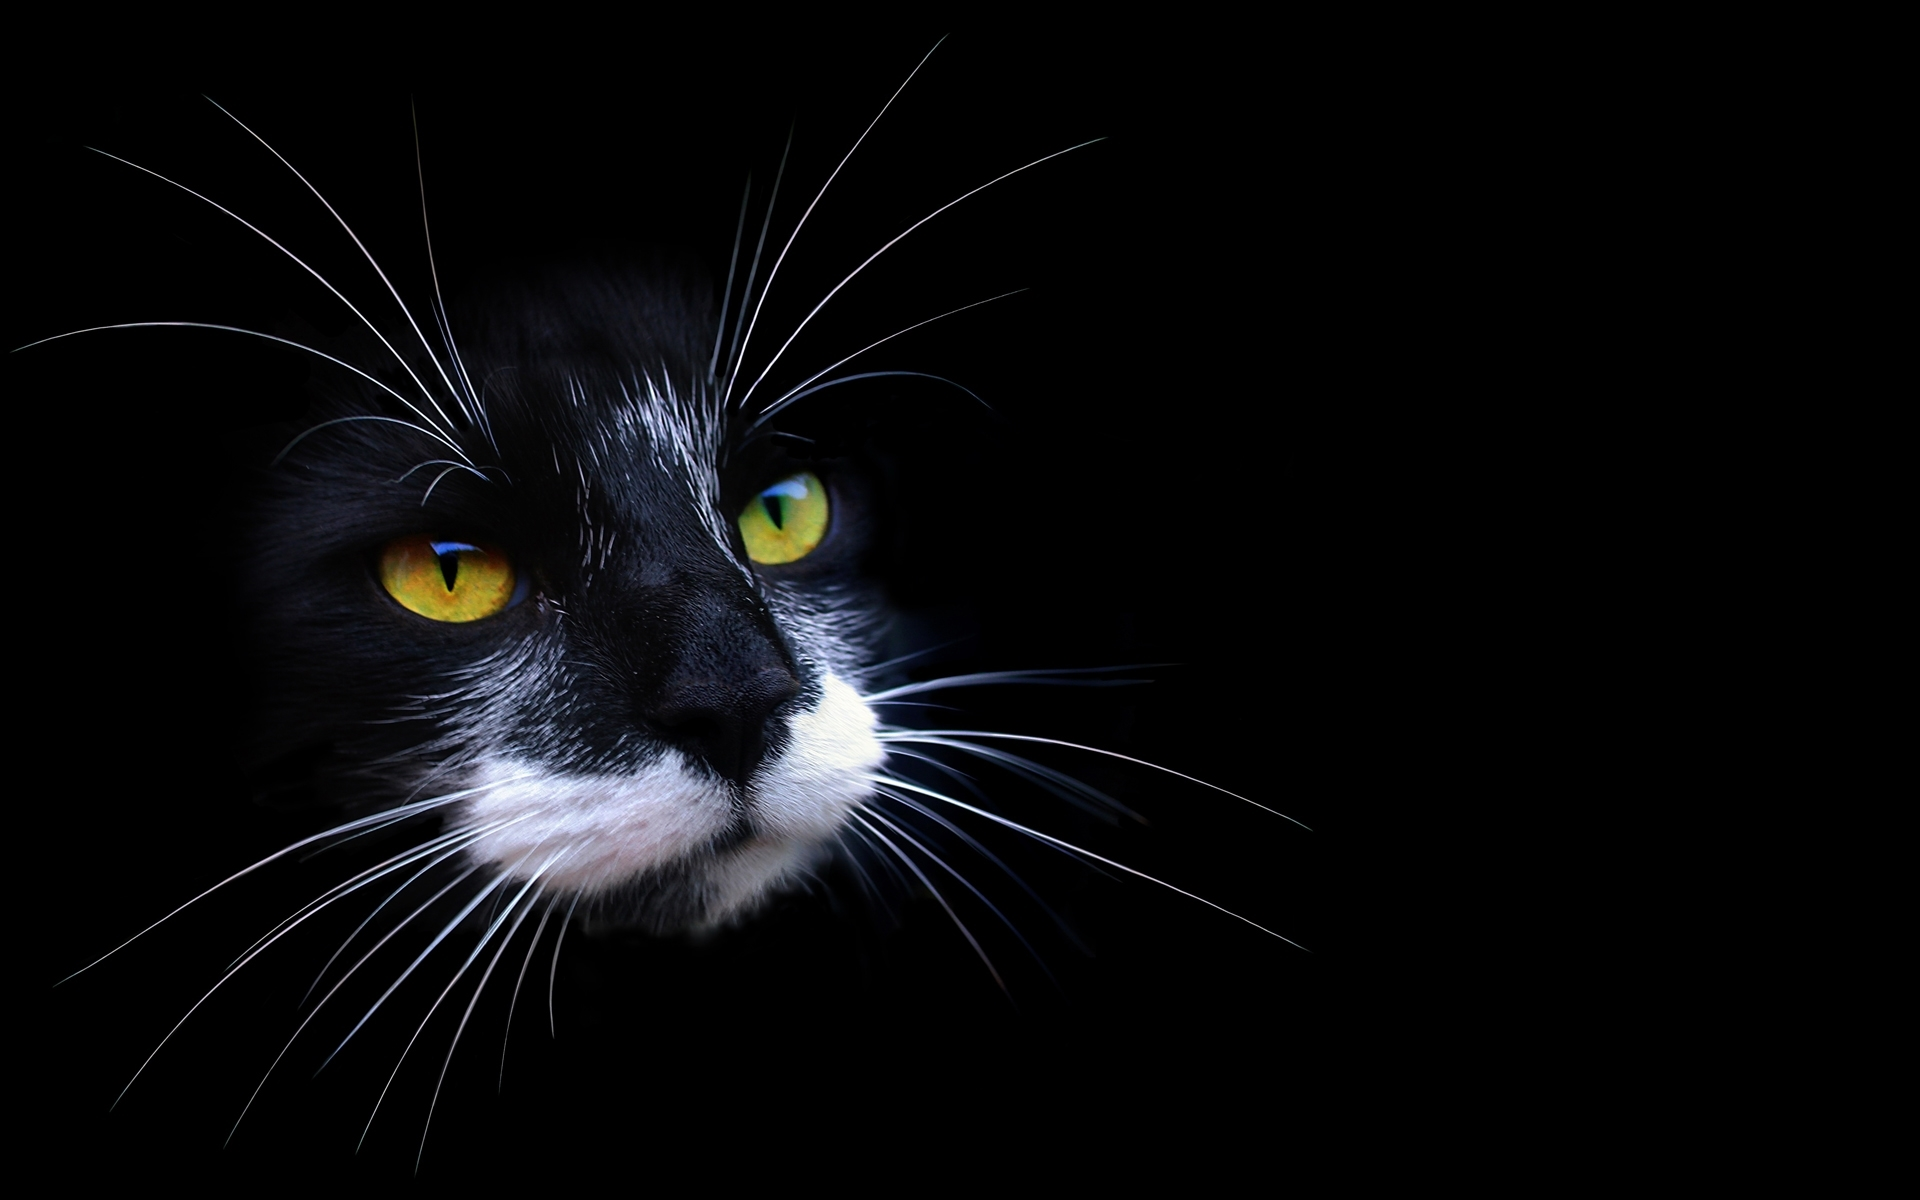 Cat desktop wallpaper - Cool backgrounds of cats ...